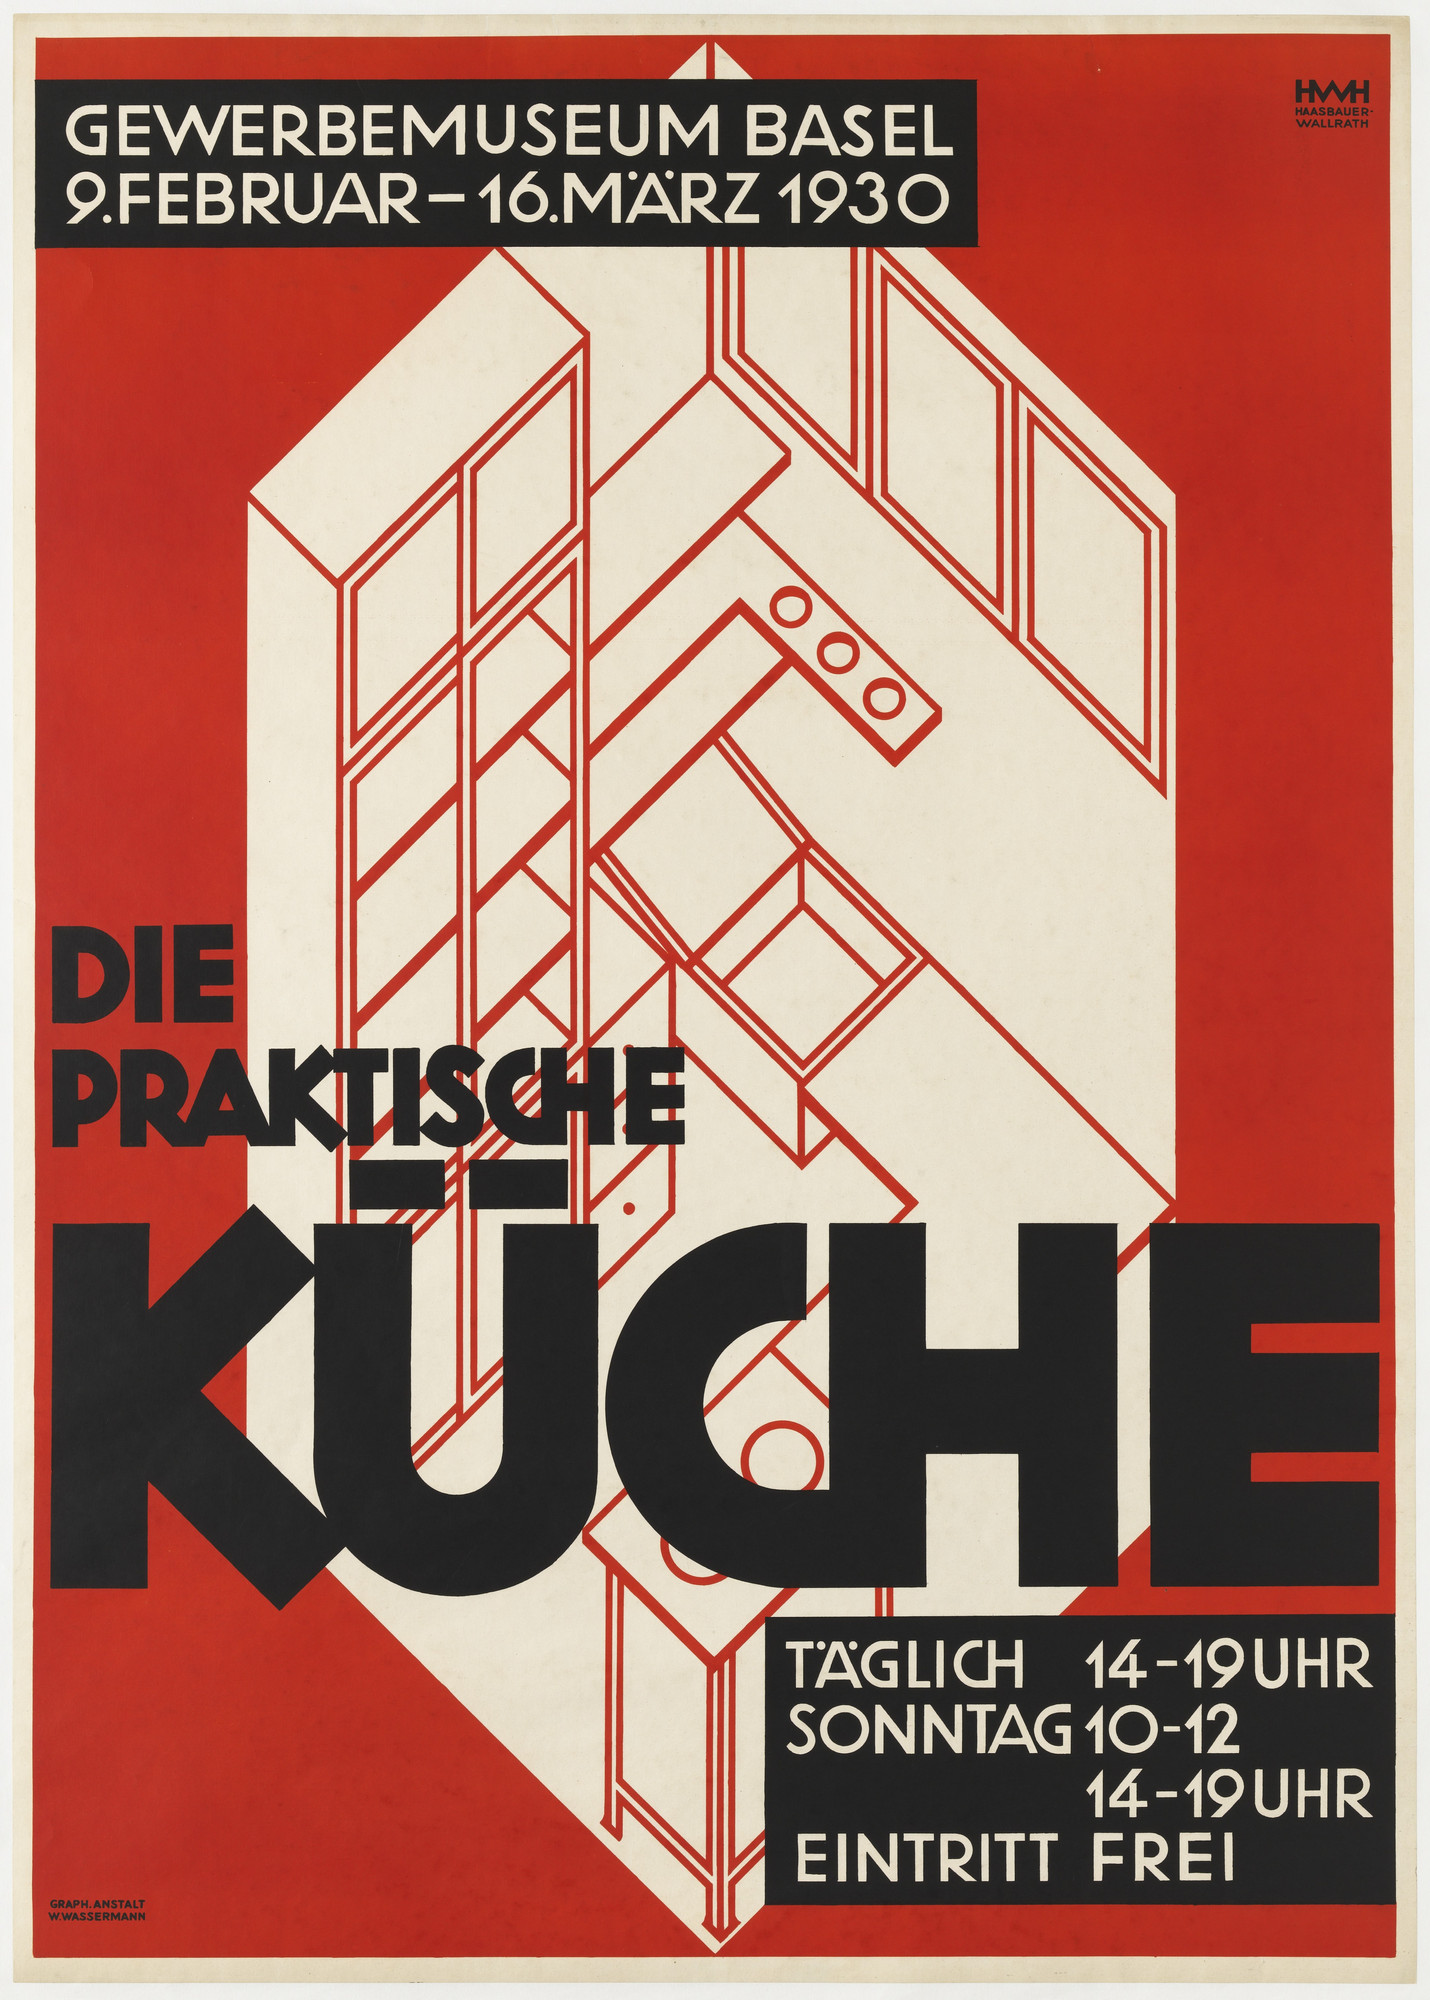 Helene Haasbauer-Wallrath. Die Praktische Küche (The Practical Kitchen) (Poster for an exhibition at the Gewerbemuseum Basel). 1930